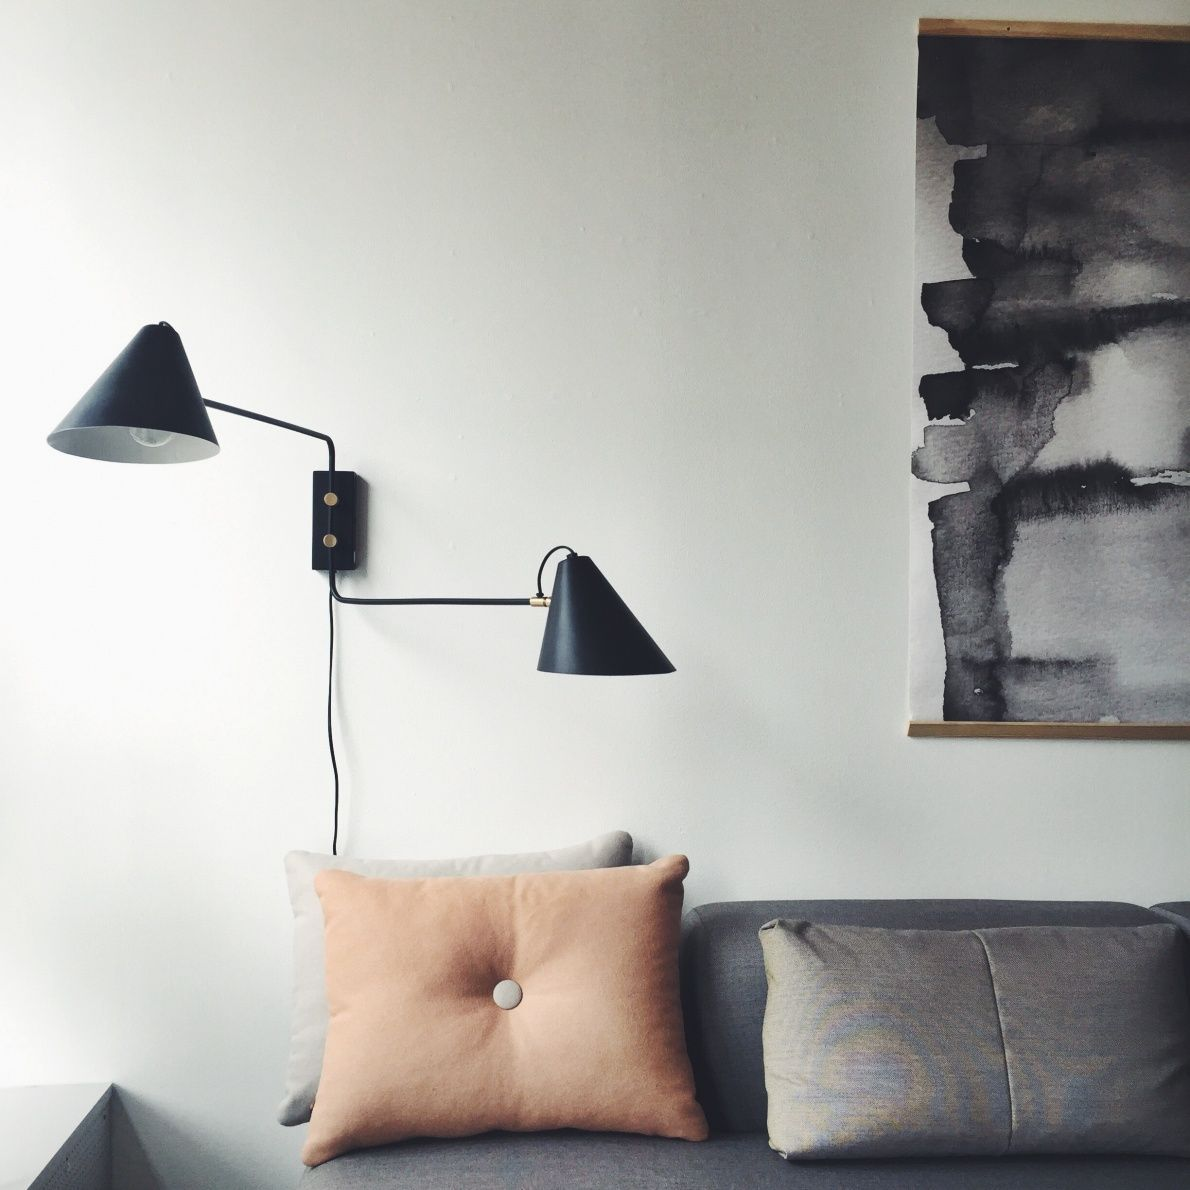 The Lovely Wall Lamp Club By House Doctor Kvart Interior Wall Lamp Wall Lamp Design Modern Wall Lamp